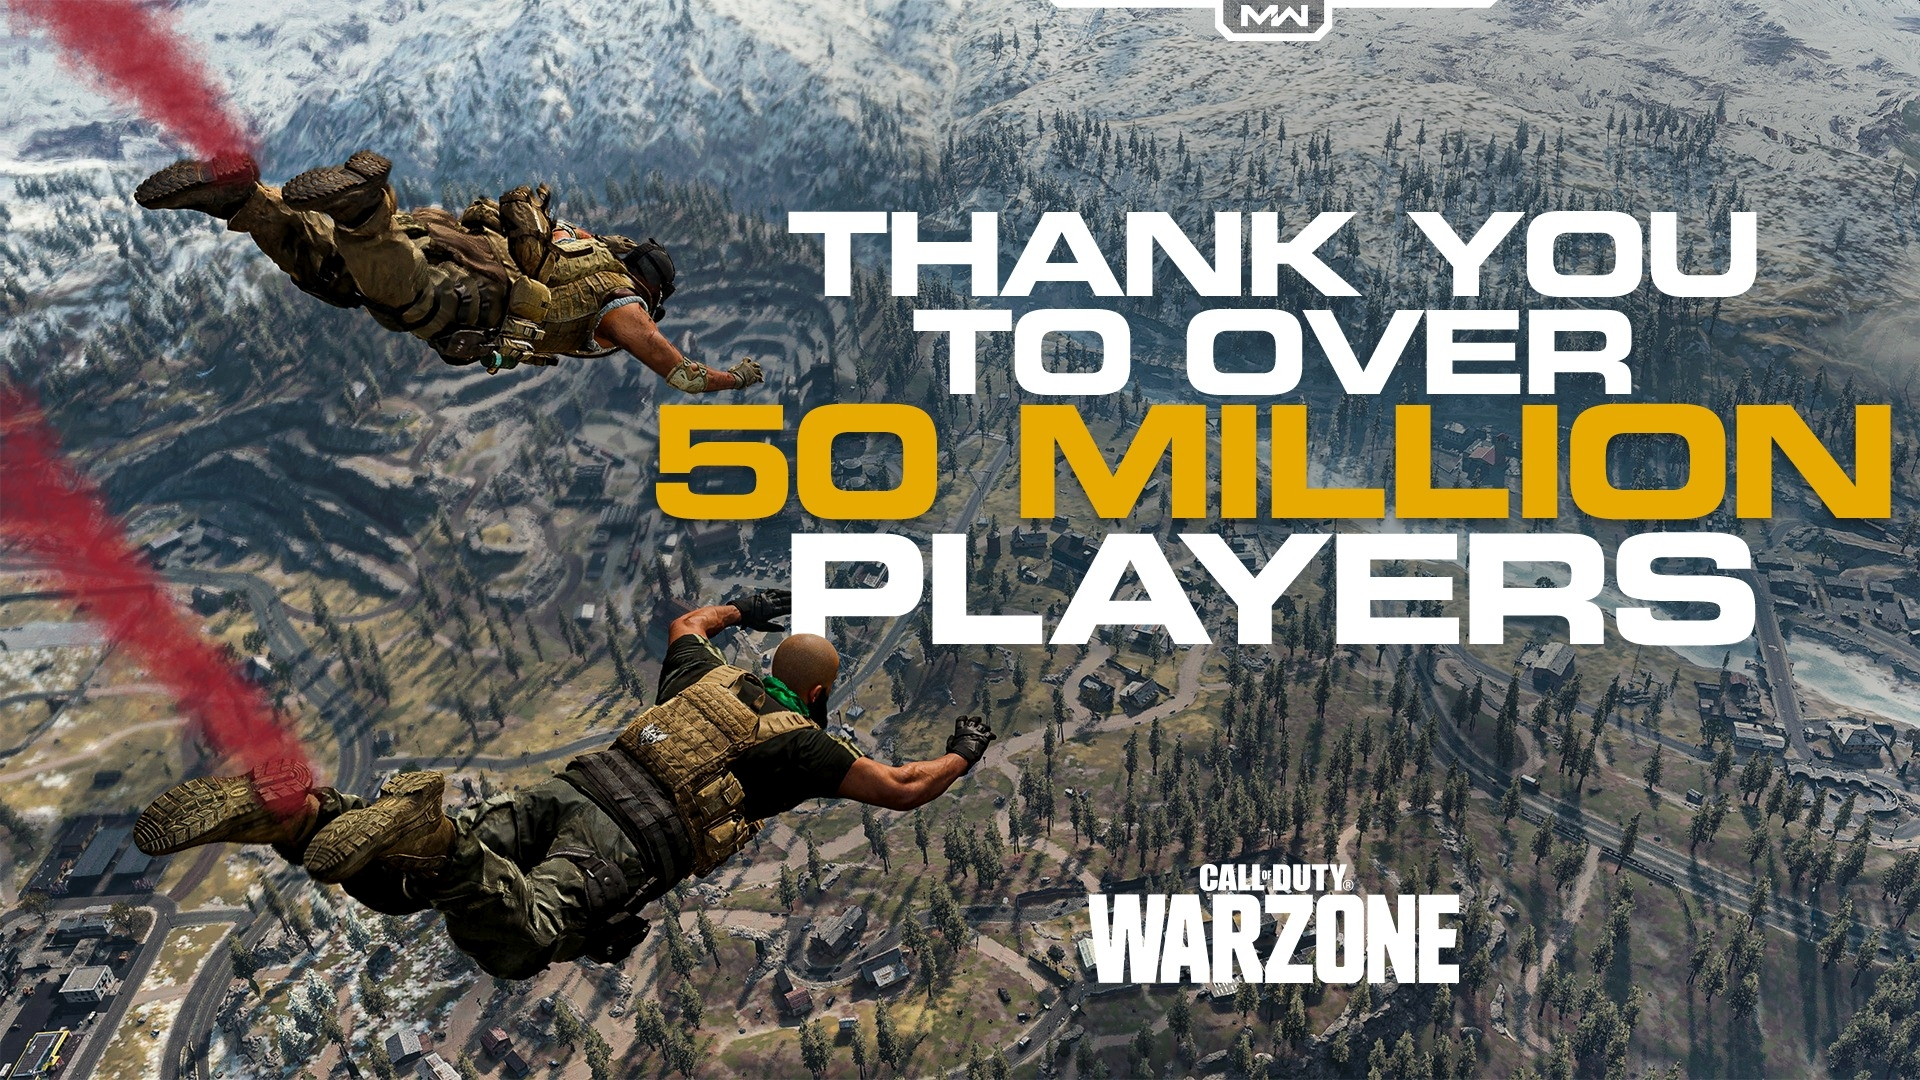 Infinity Ward's Call of Duty Warzone Surpasses 50 Million Players Worldwide